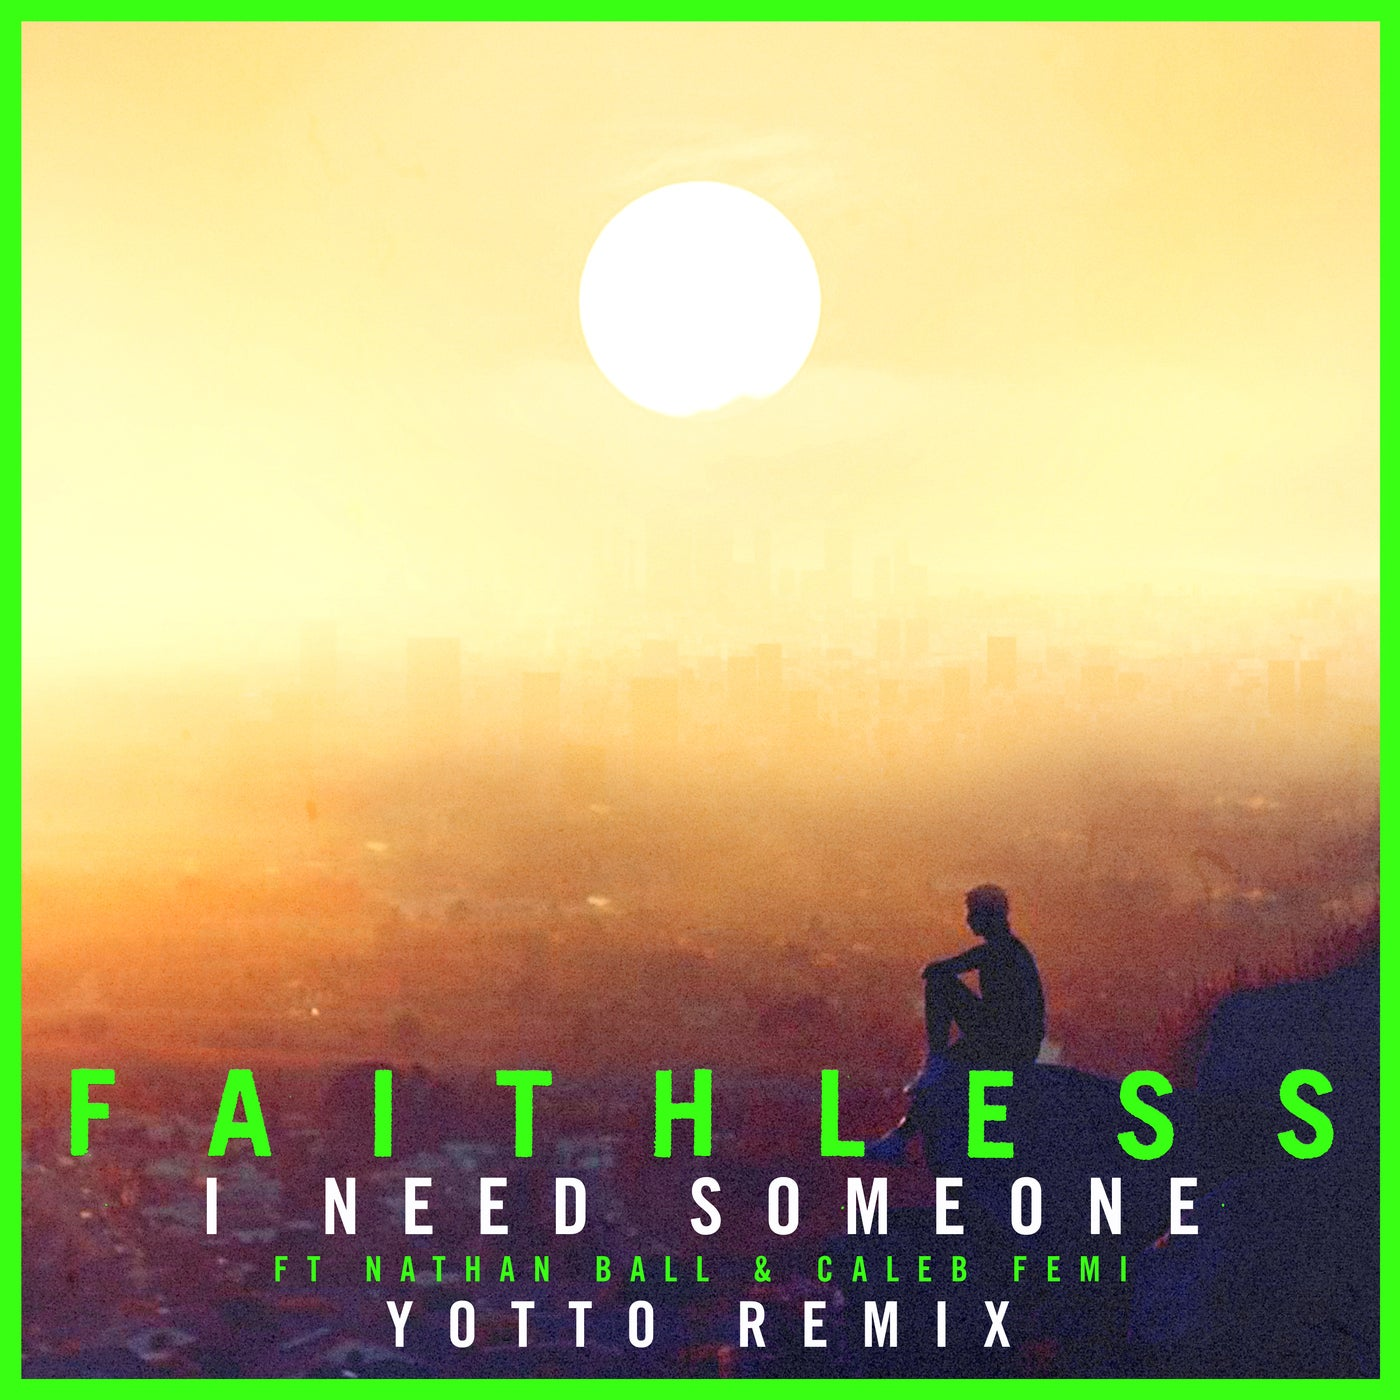 I Need Someone (feat. Nathan Ball & Caleb Femi) [Yotto Remix] (Extended Mix)